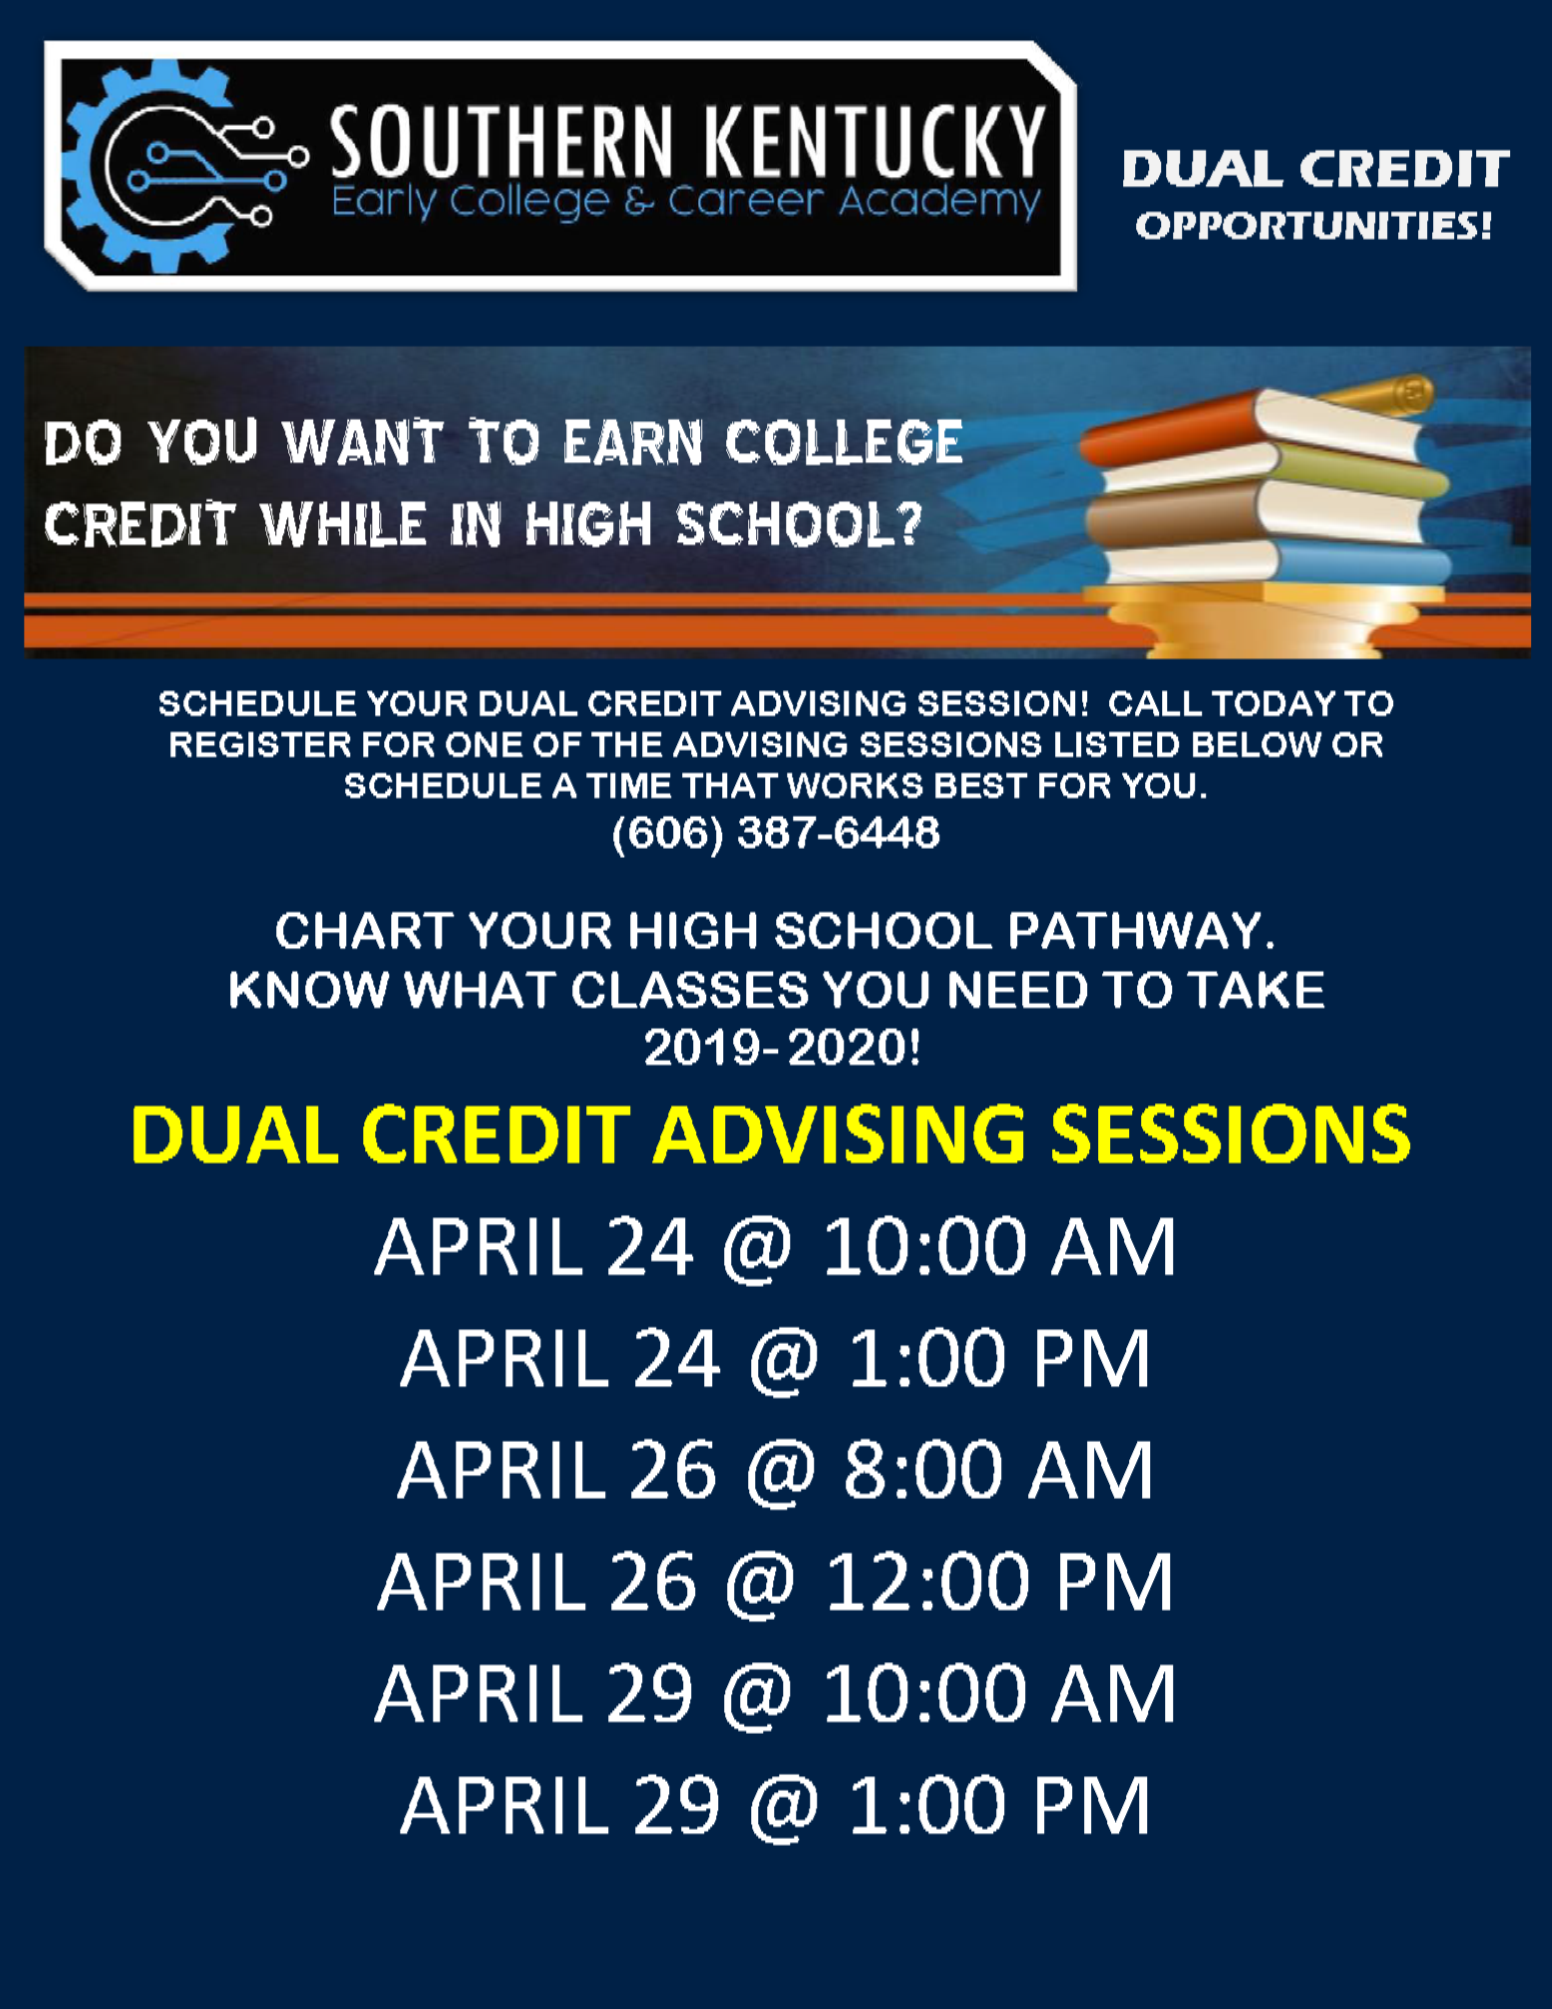 Check out these DUAL CREDIT opportunities at SoKY ECCA!